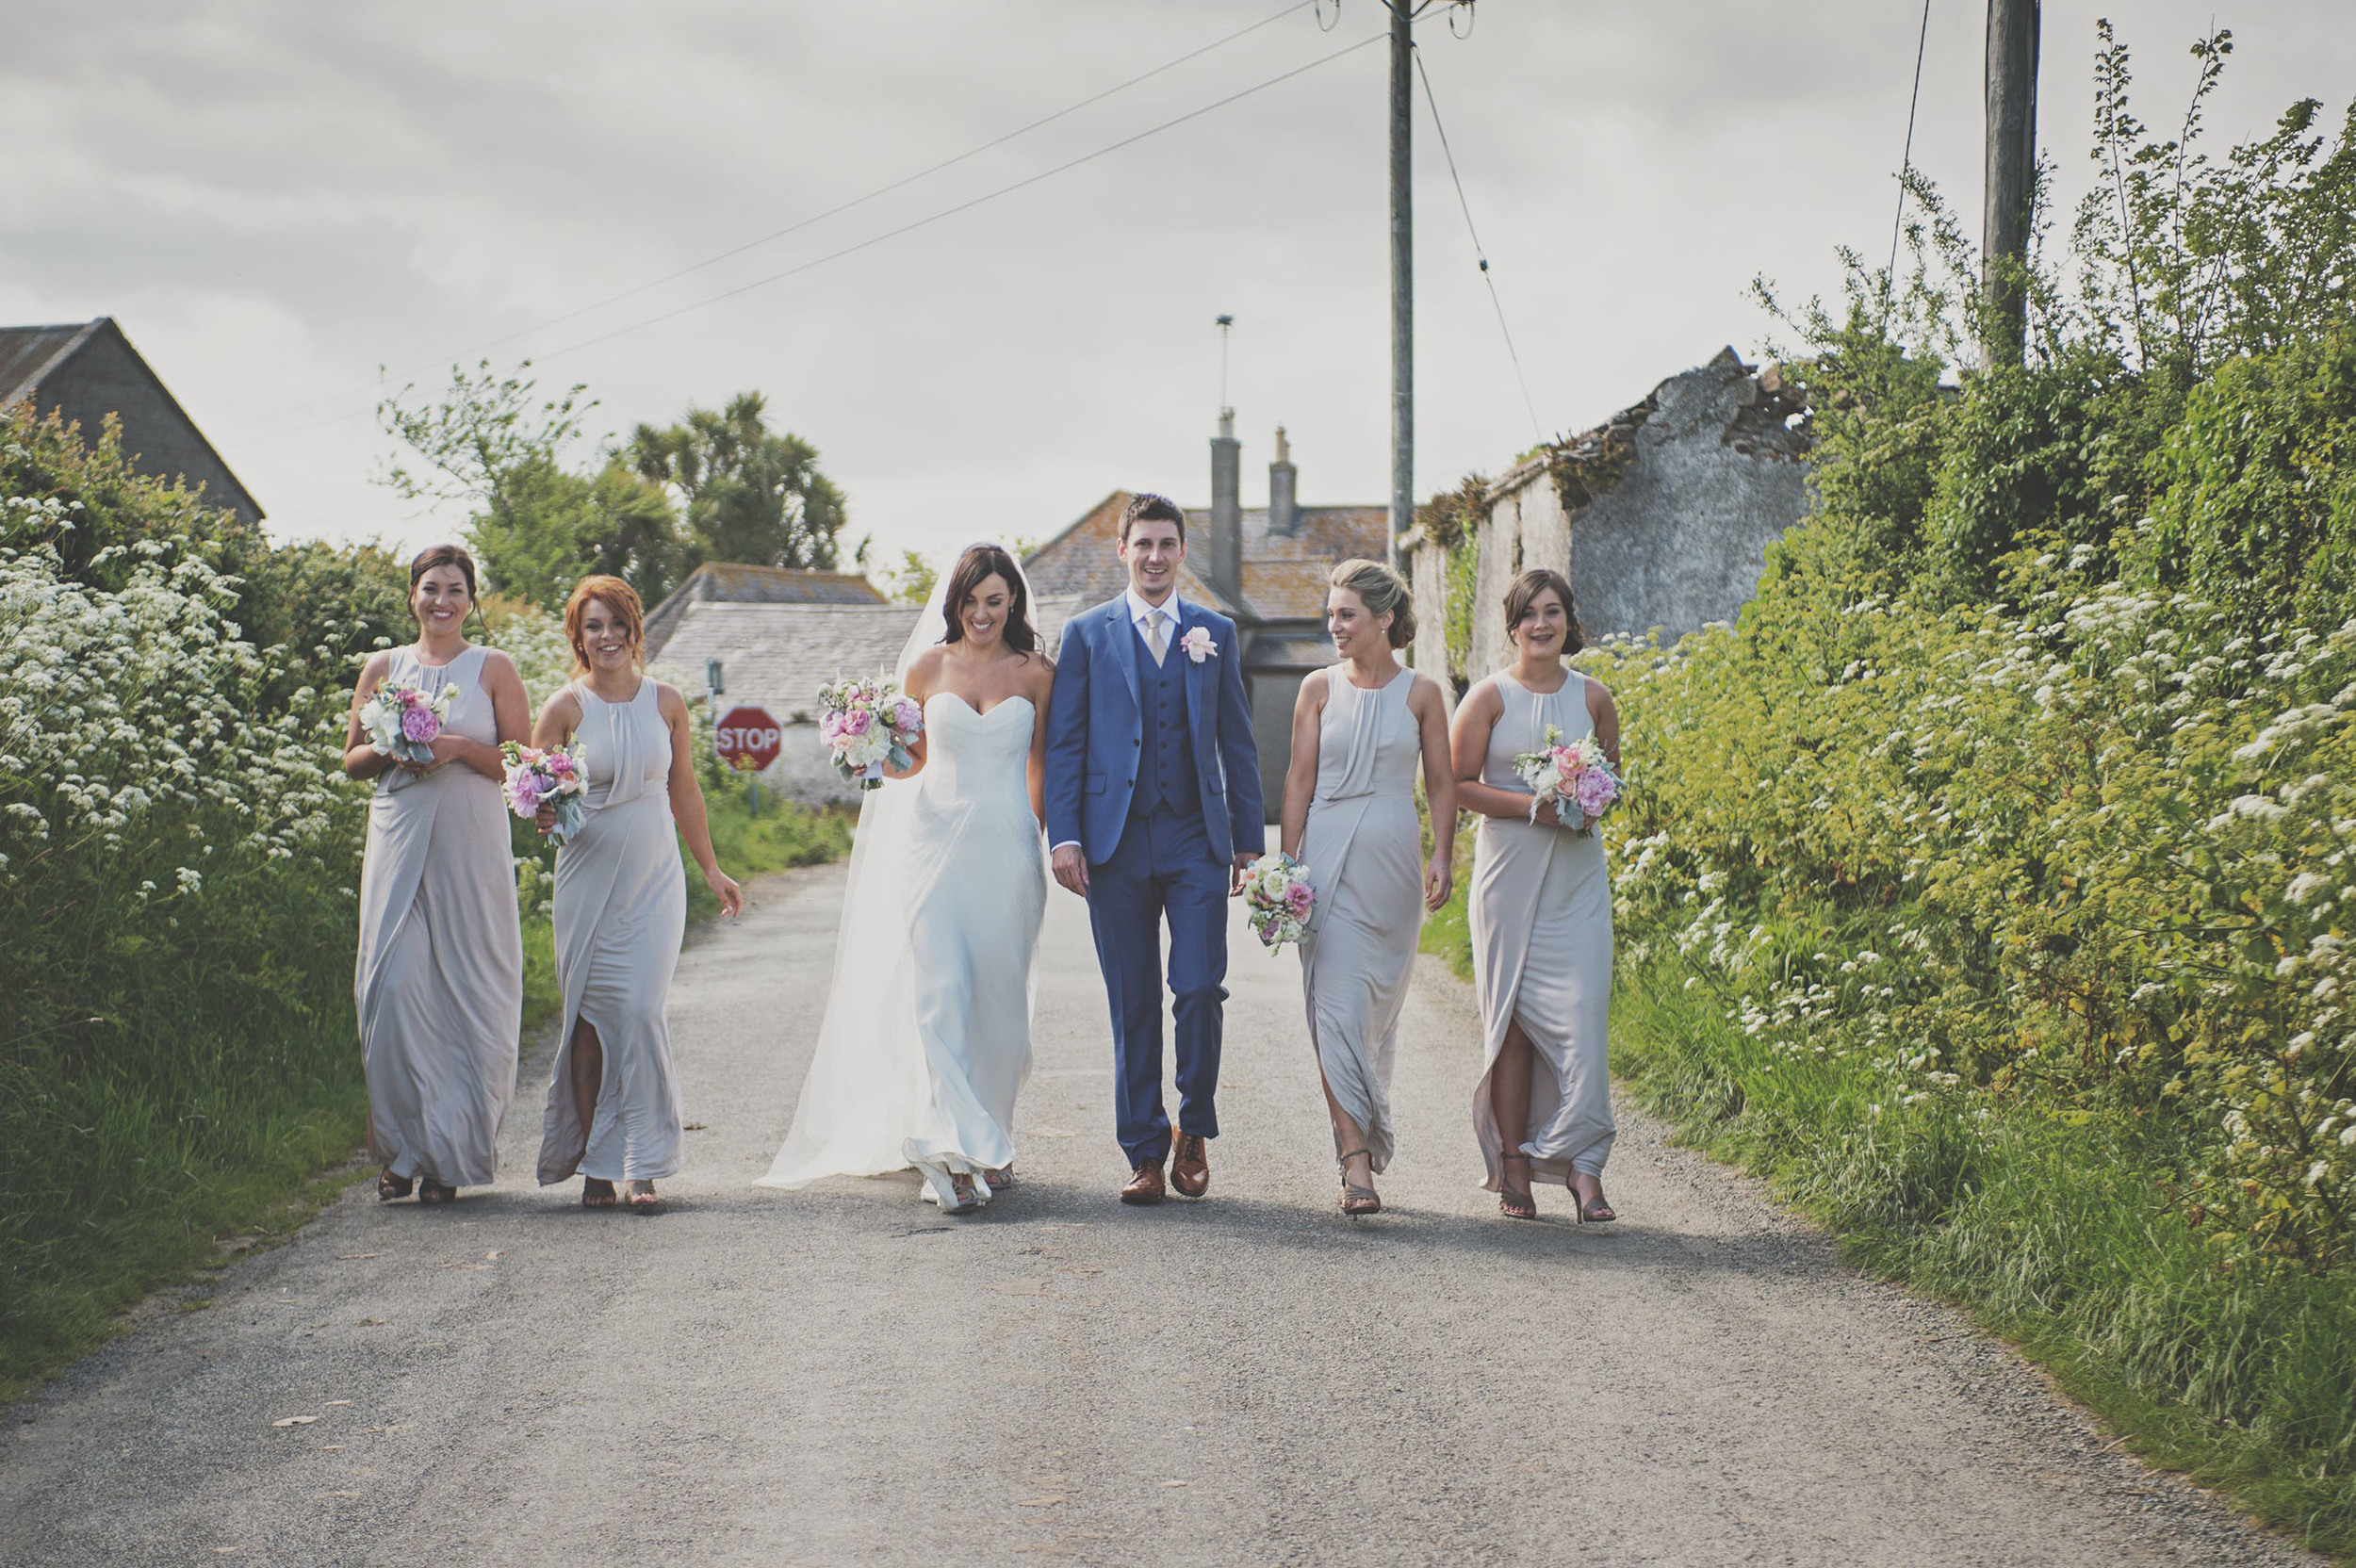 Julie & Matt's Seafield Wedding by Studio33weddings 071.jpg